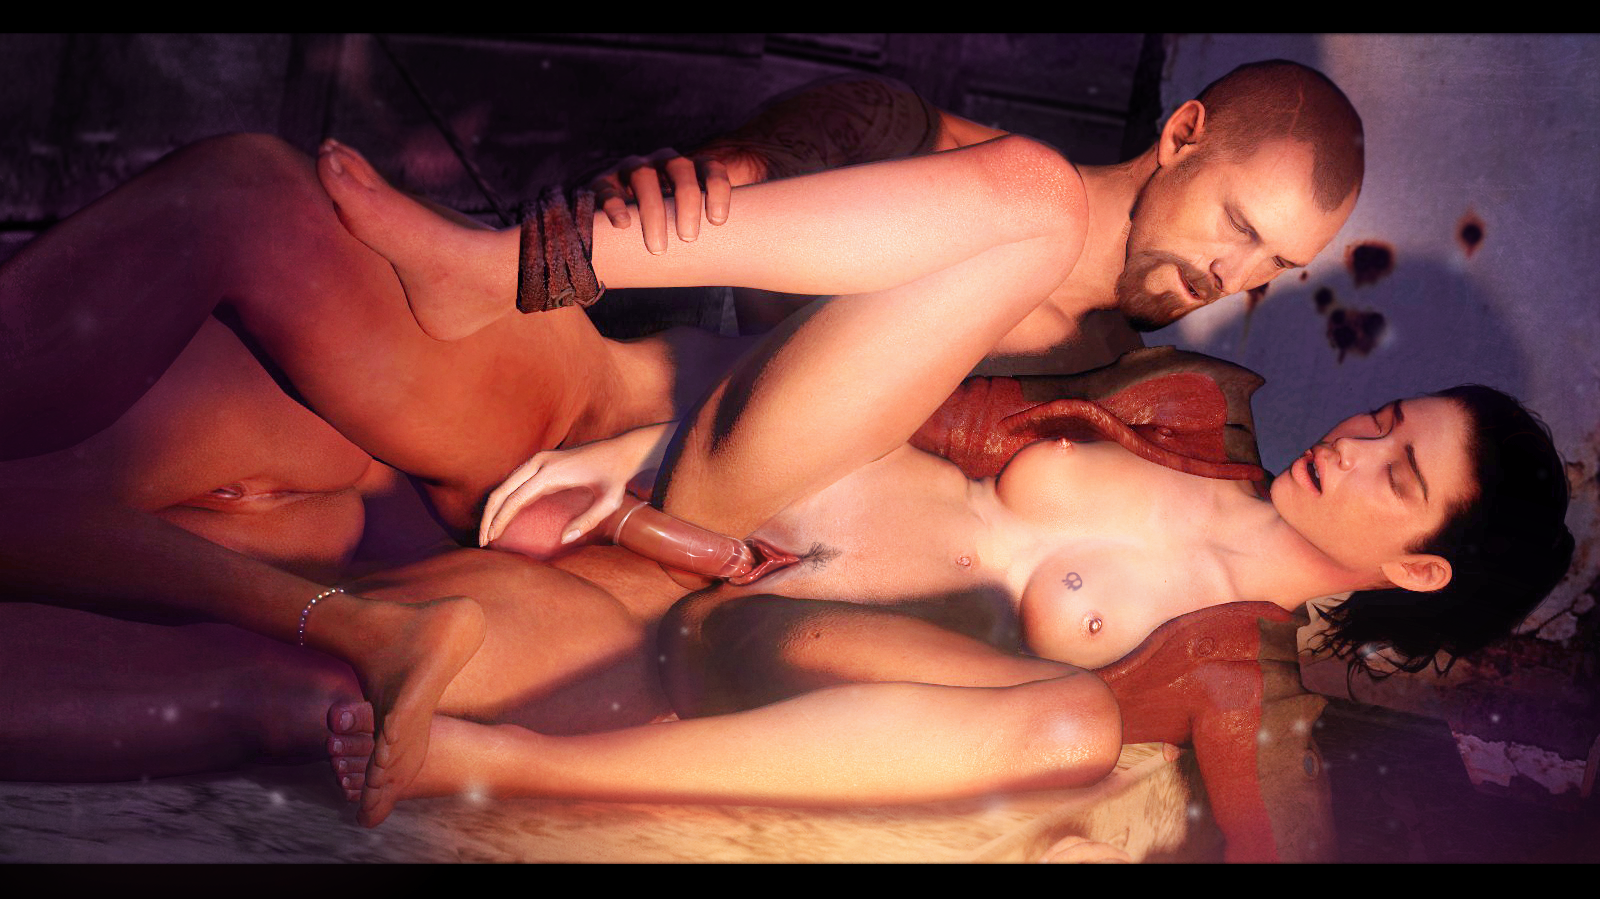 Halflife porn video nackt download